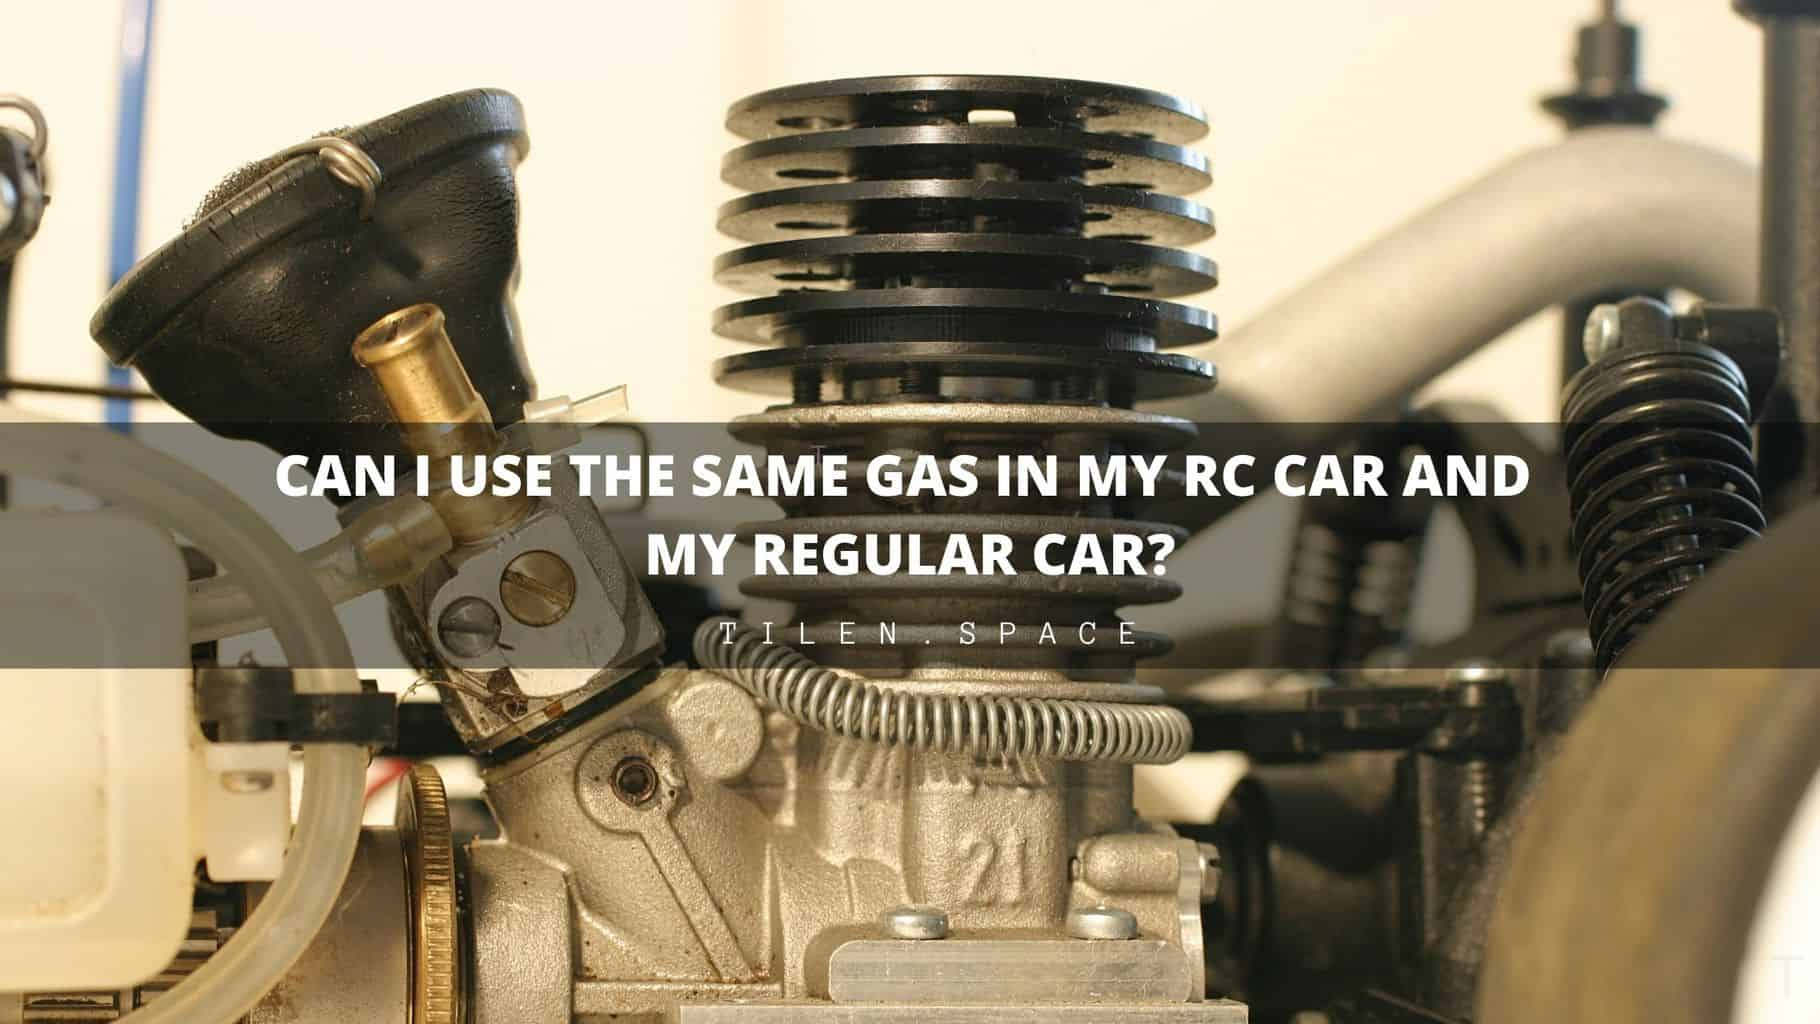 Can I Use the Same Gas in My RC Car and Regular Car